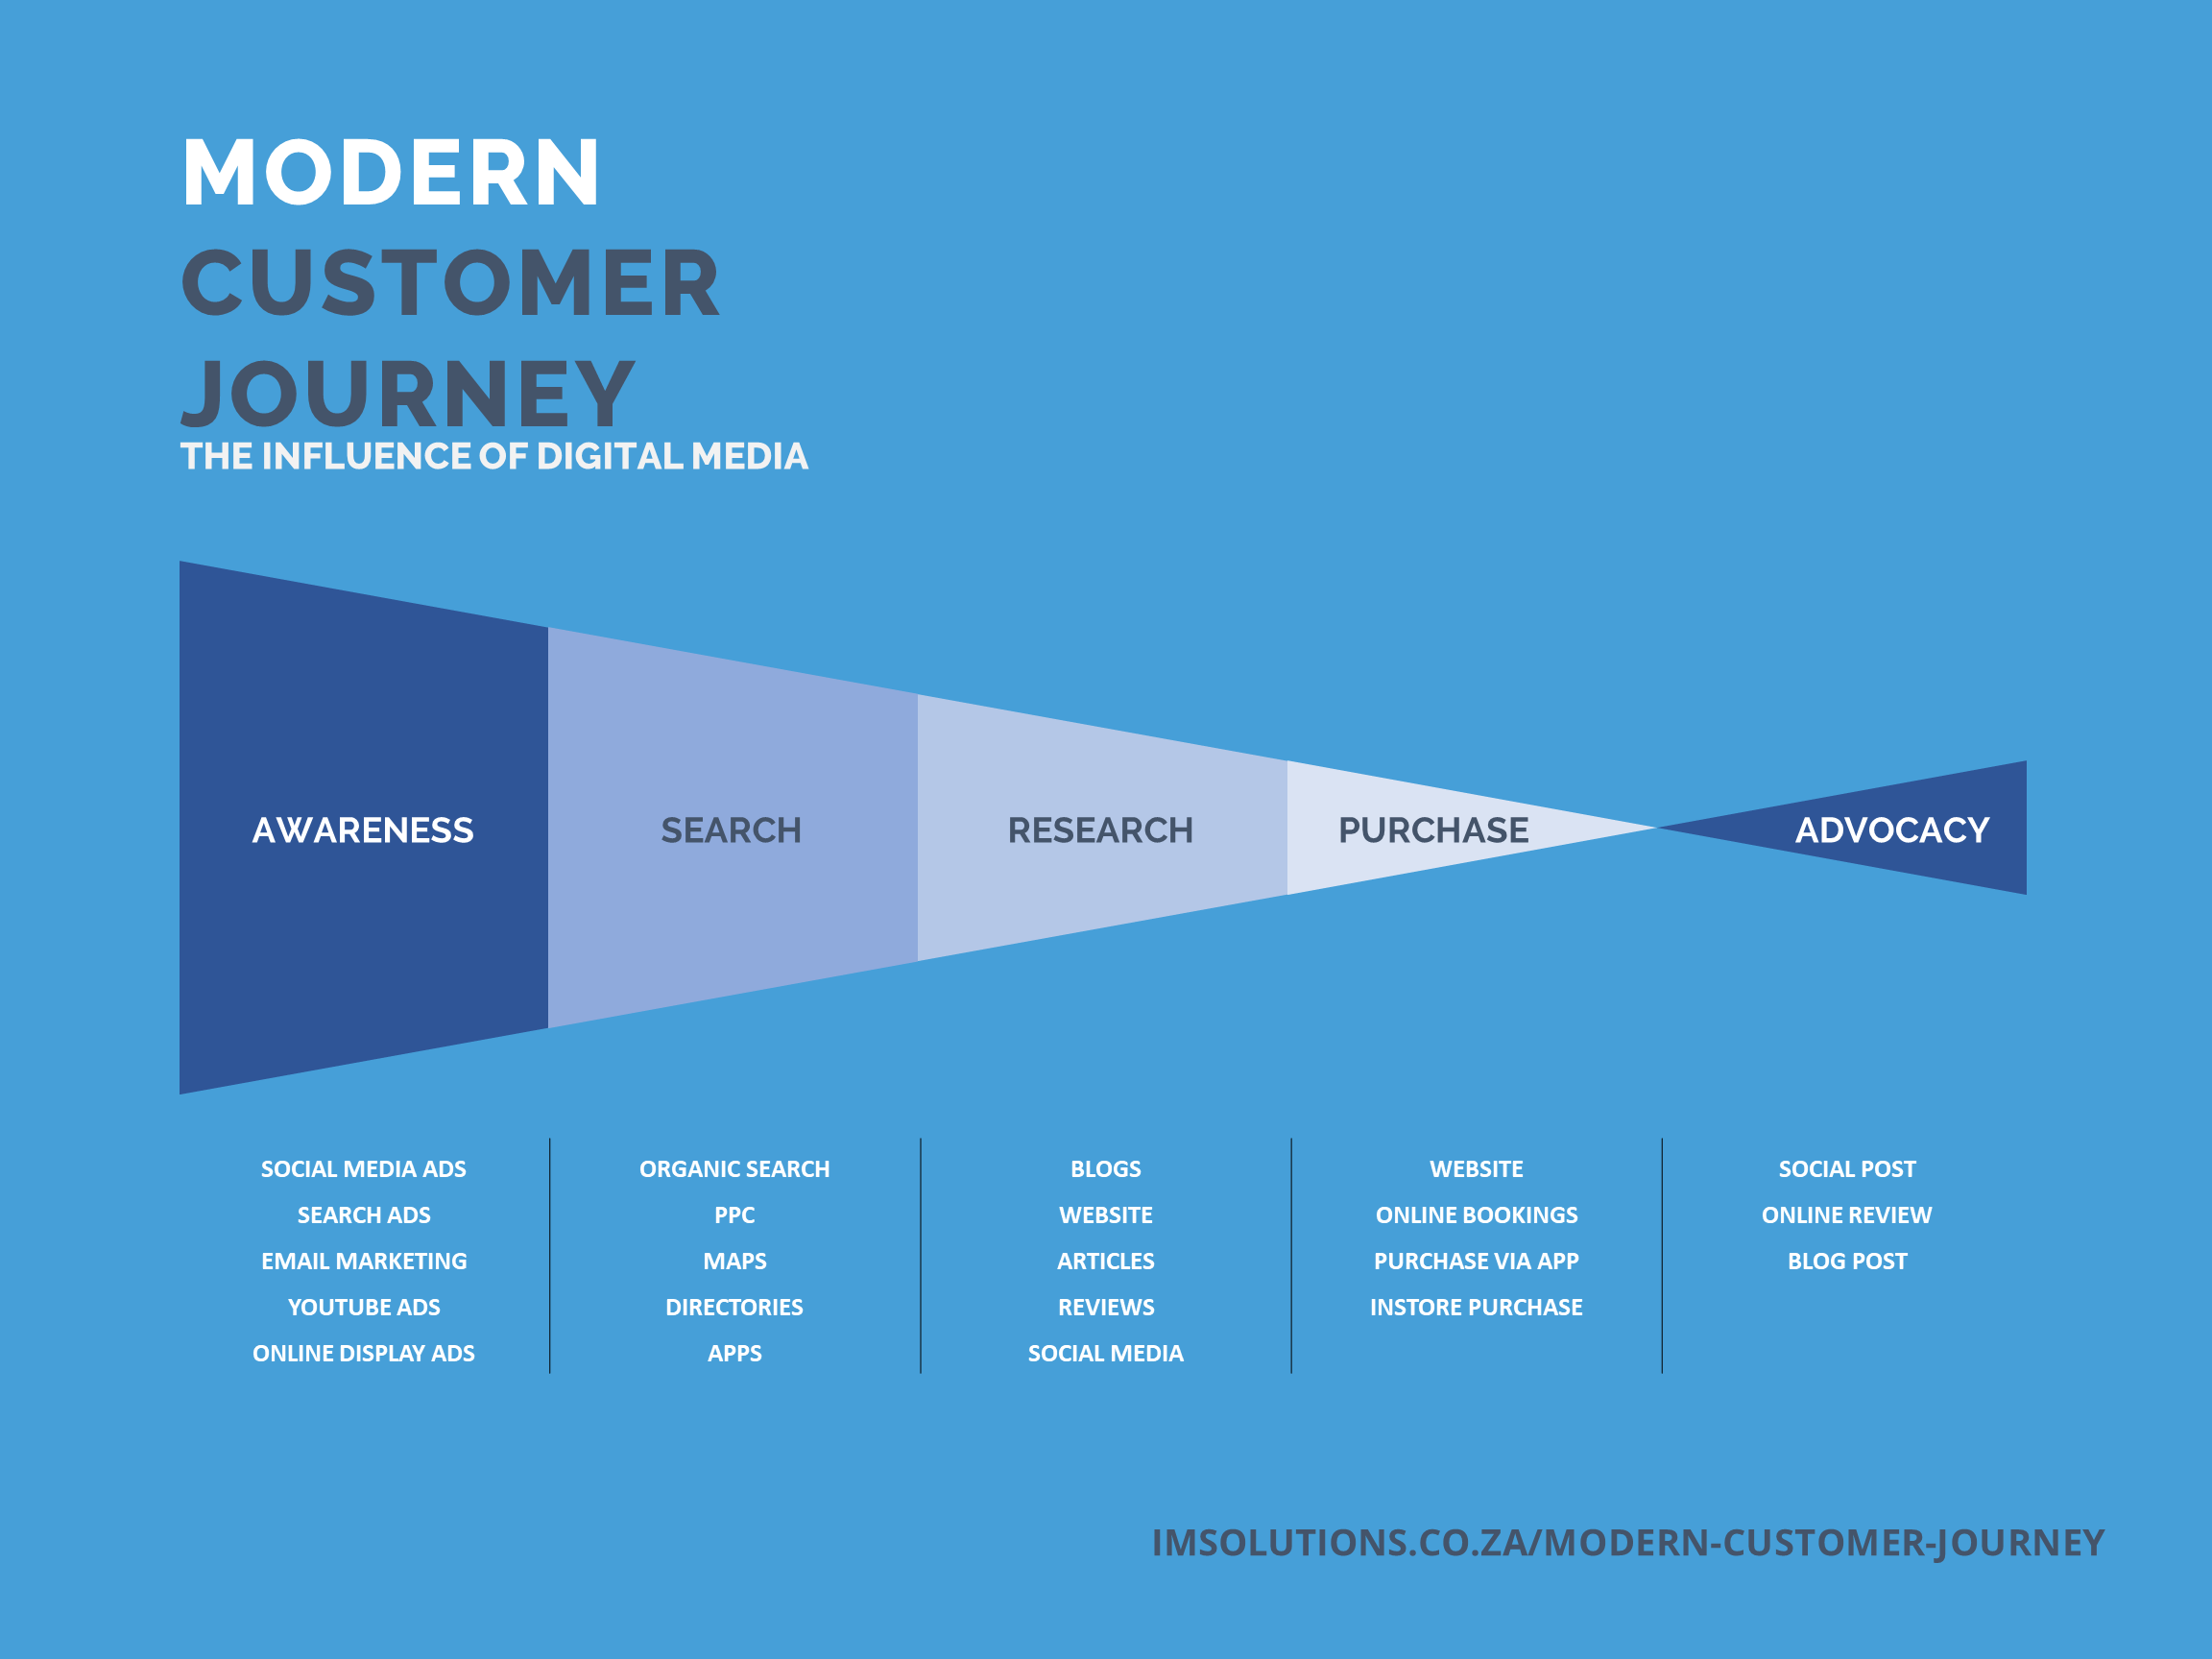 How the customer journey has changed due to the influence of social media